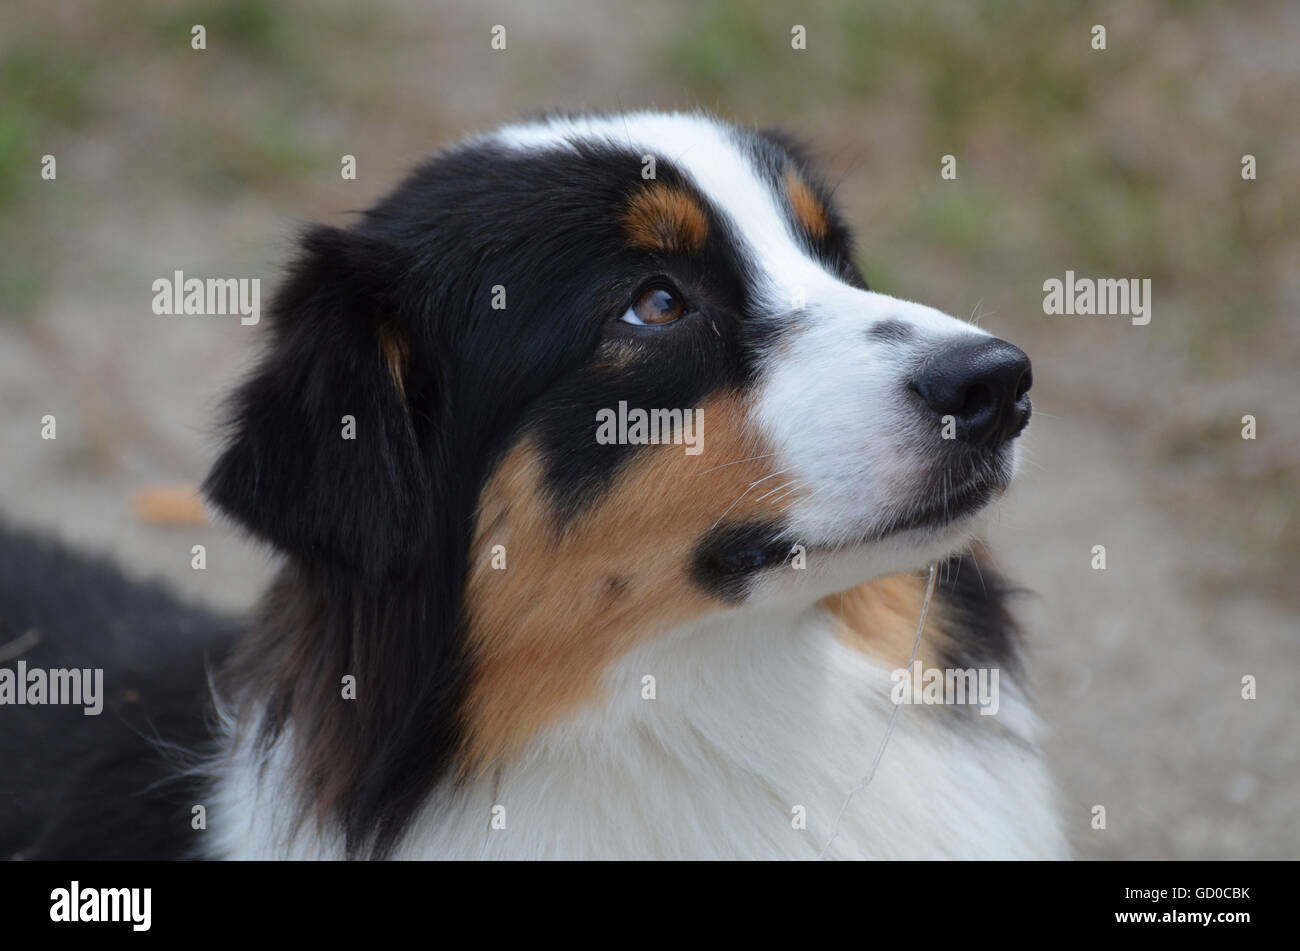 Gorgeous Aussie from a side view with a really cute face. - Stock Image